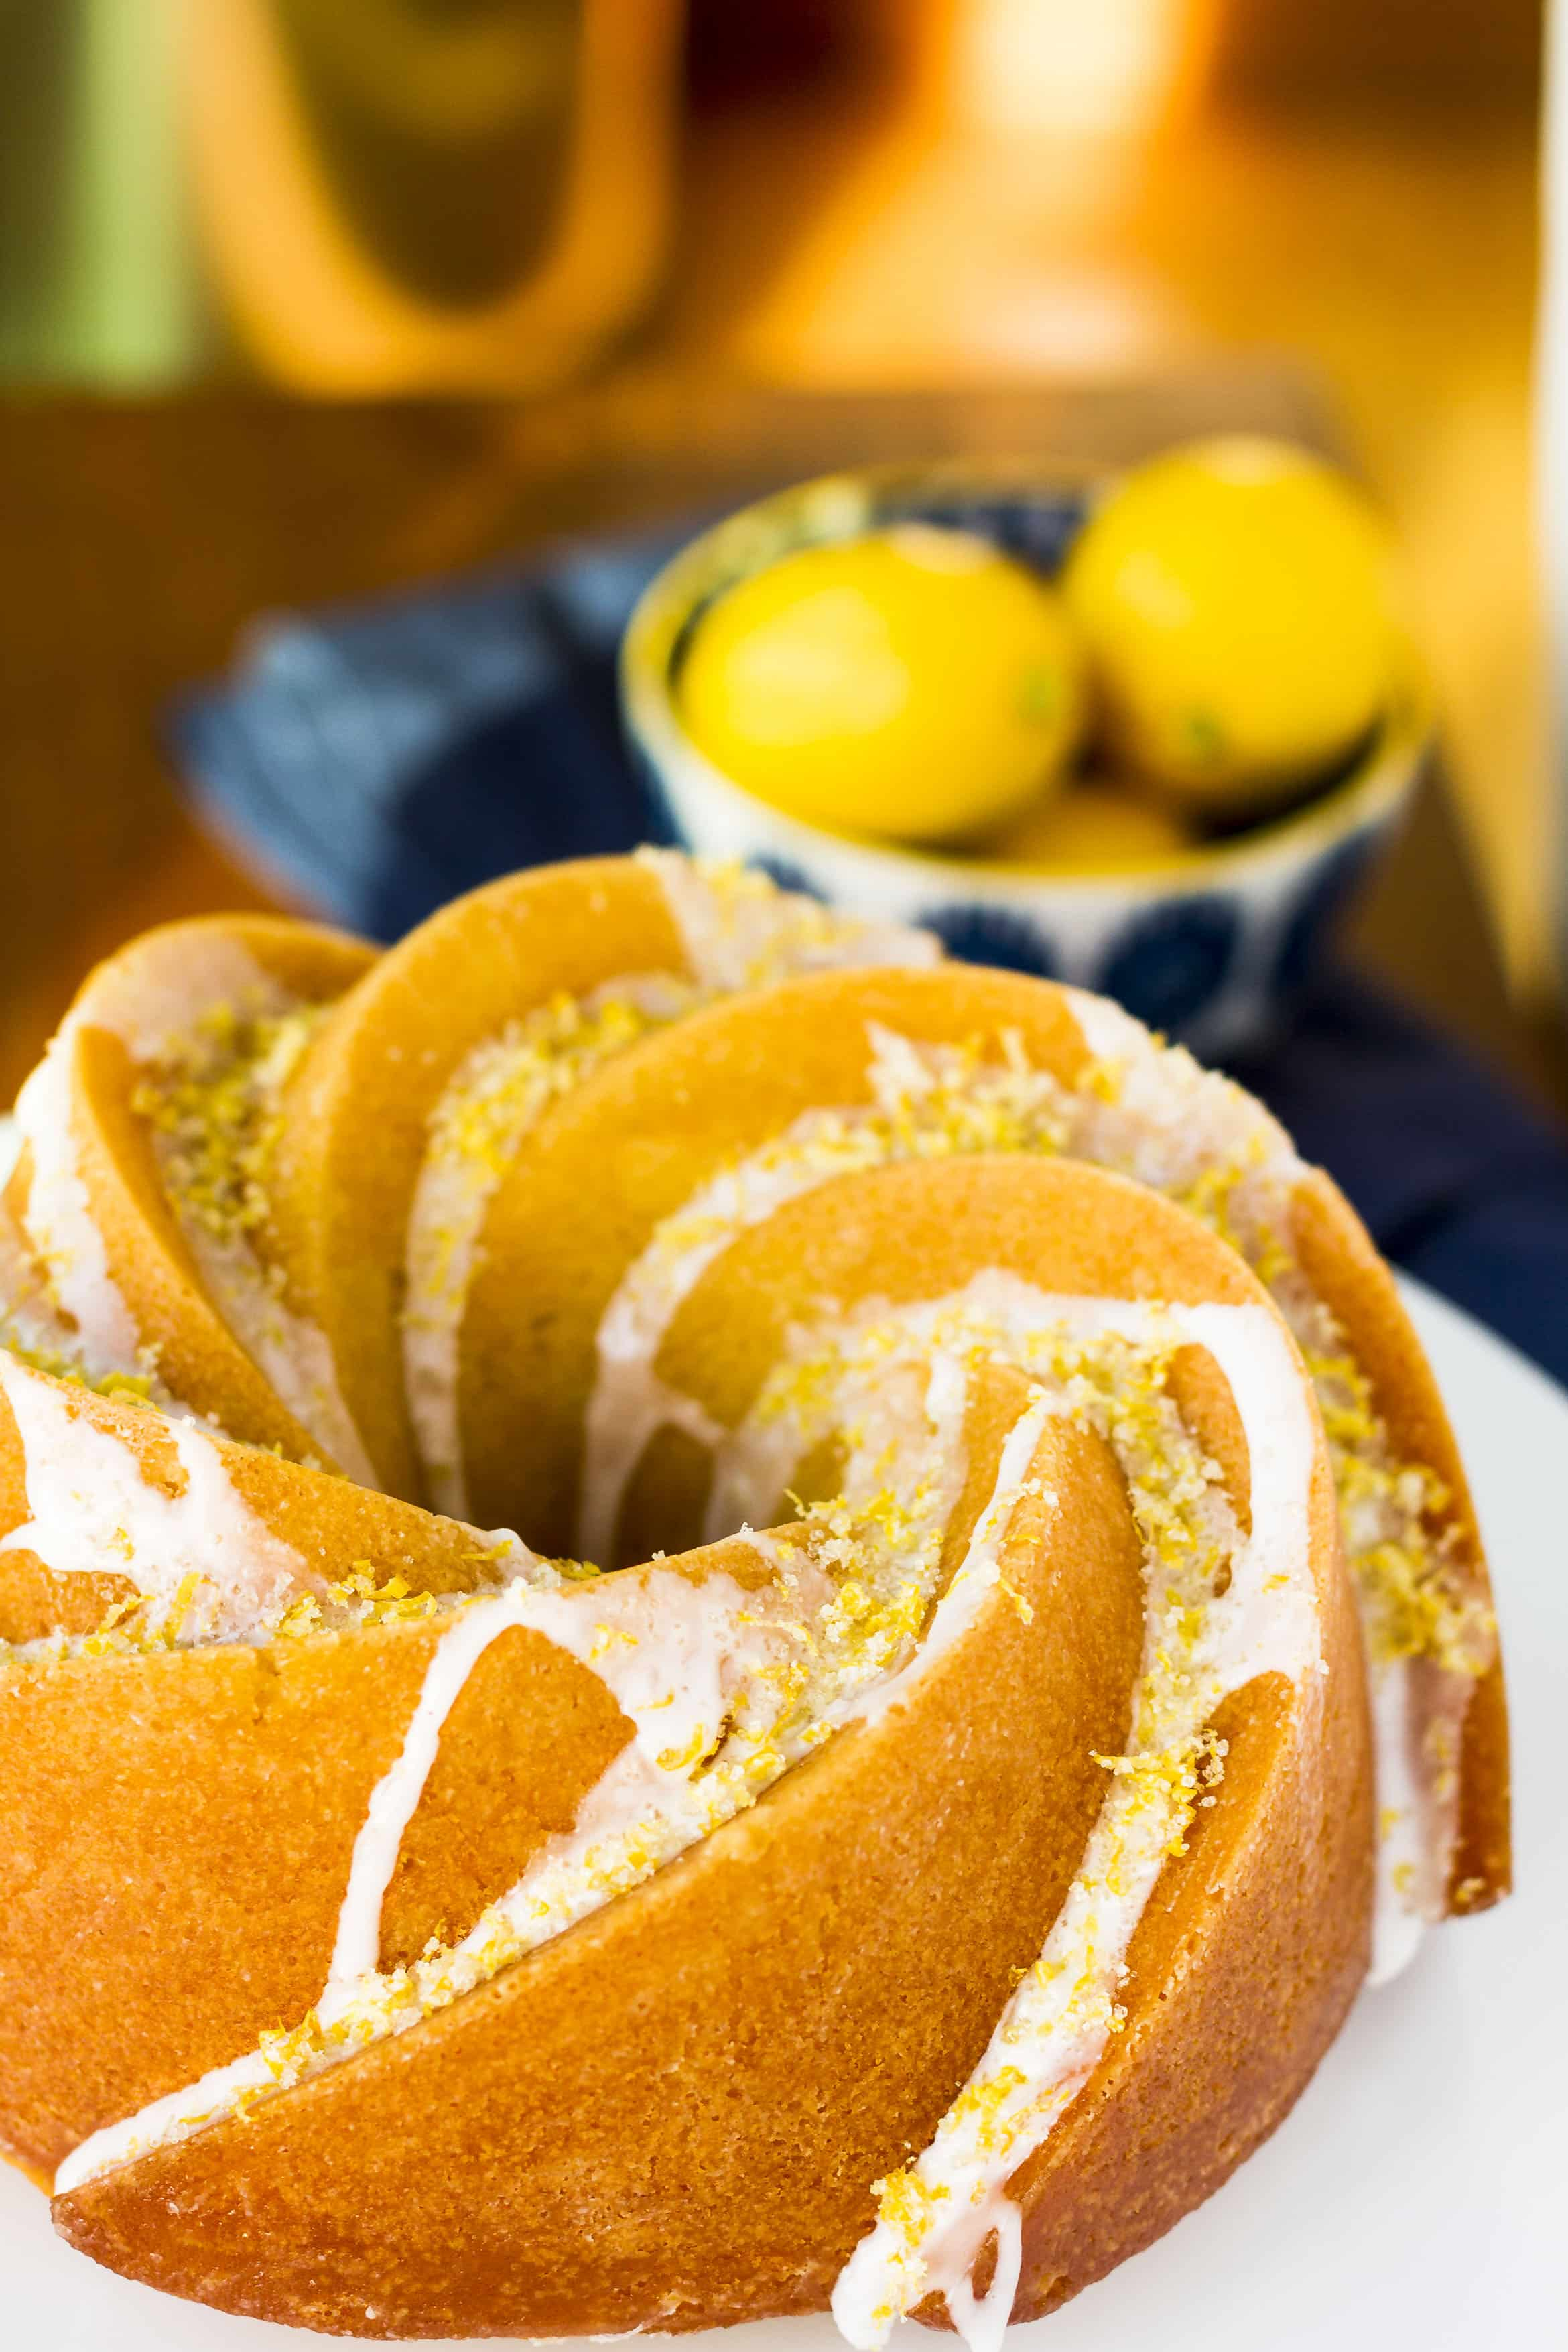 Triple Lemon Bundt Cake -- luscious lemon butter cake infused with lemon syrup, drizzled with a lemon glaze and topped off with a sprinkling of lemon sugar = HEAVEN!!! A to-die-for bundt cake recipe... | unsophisticook.com